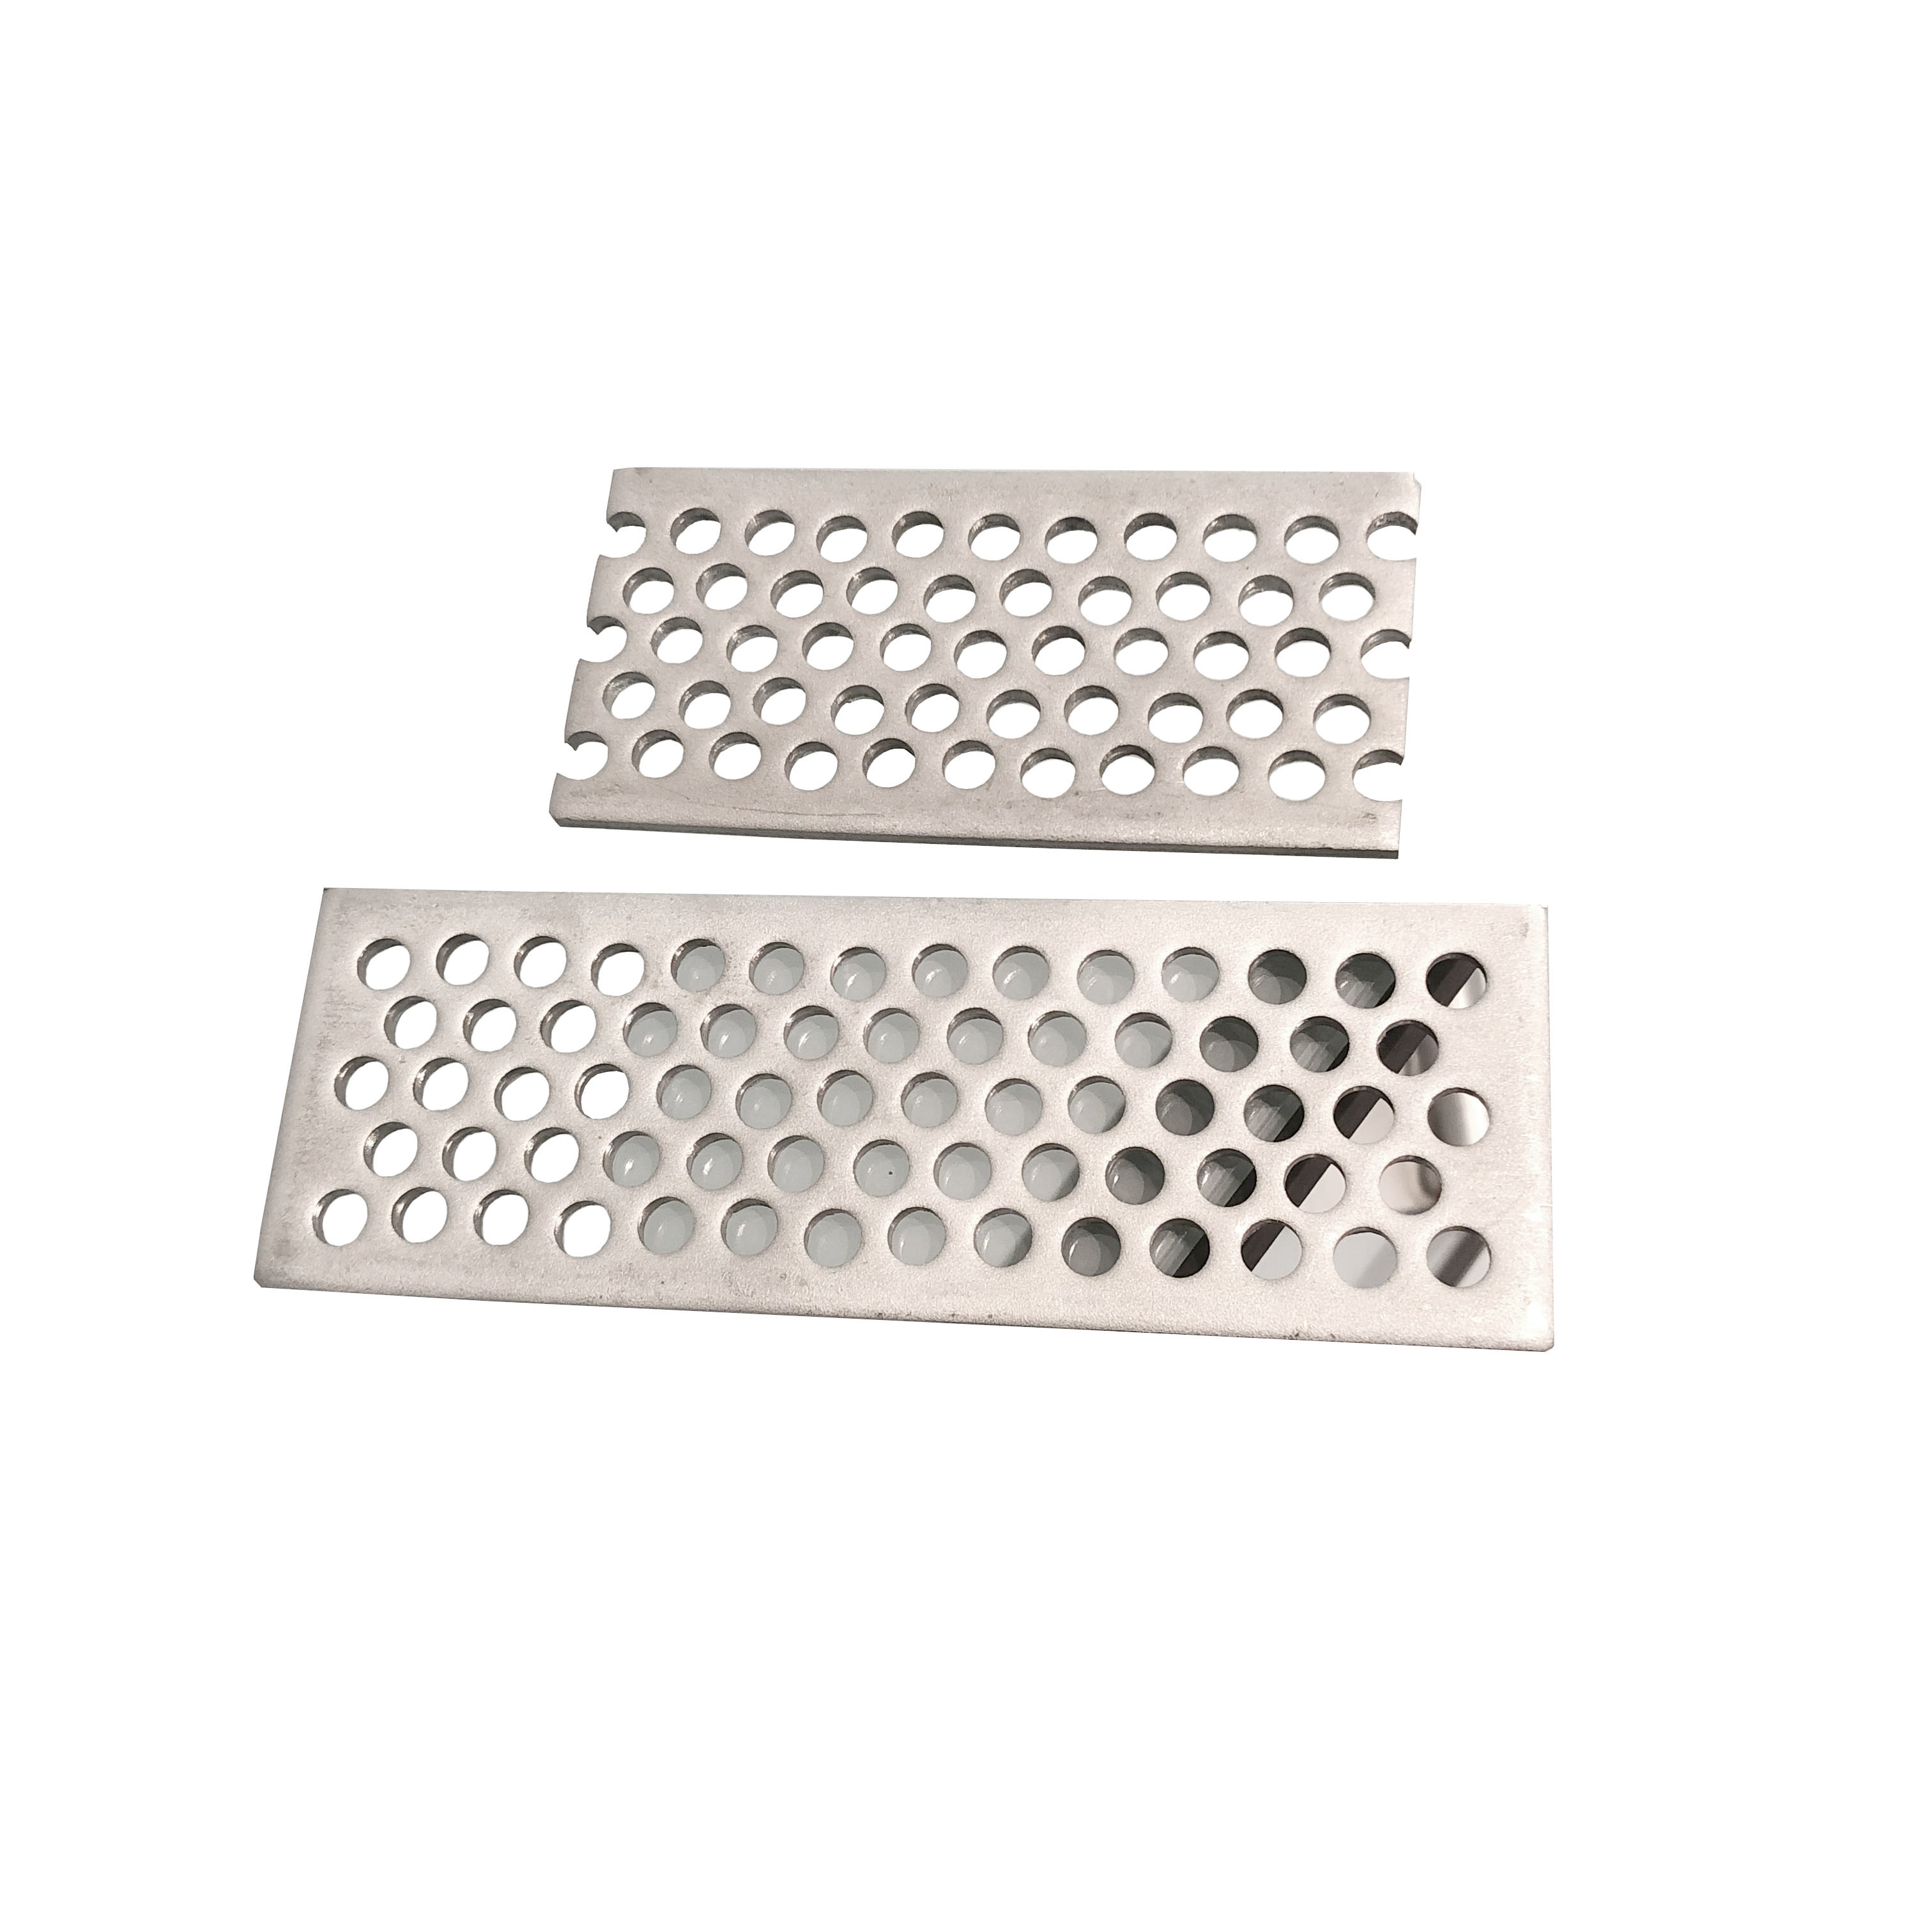 Sheet Metal Stamping Steel 0.05mm Tolerances With Zinc Plating